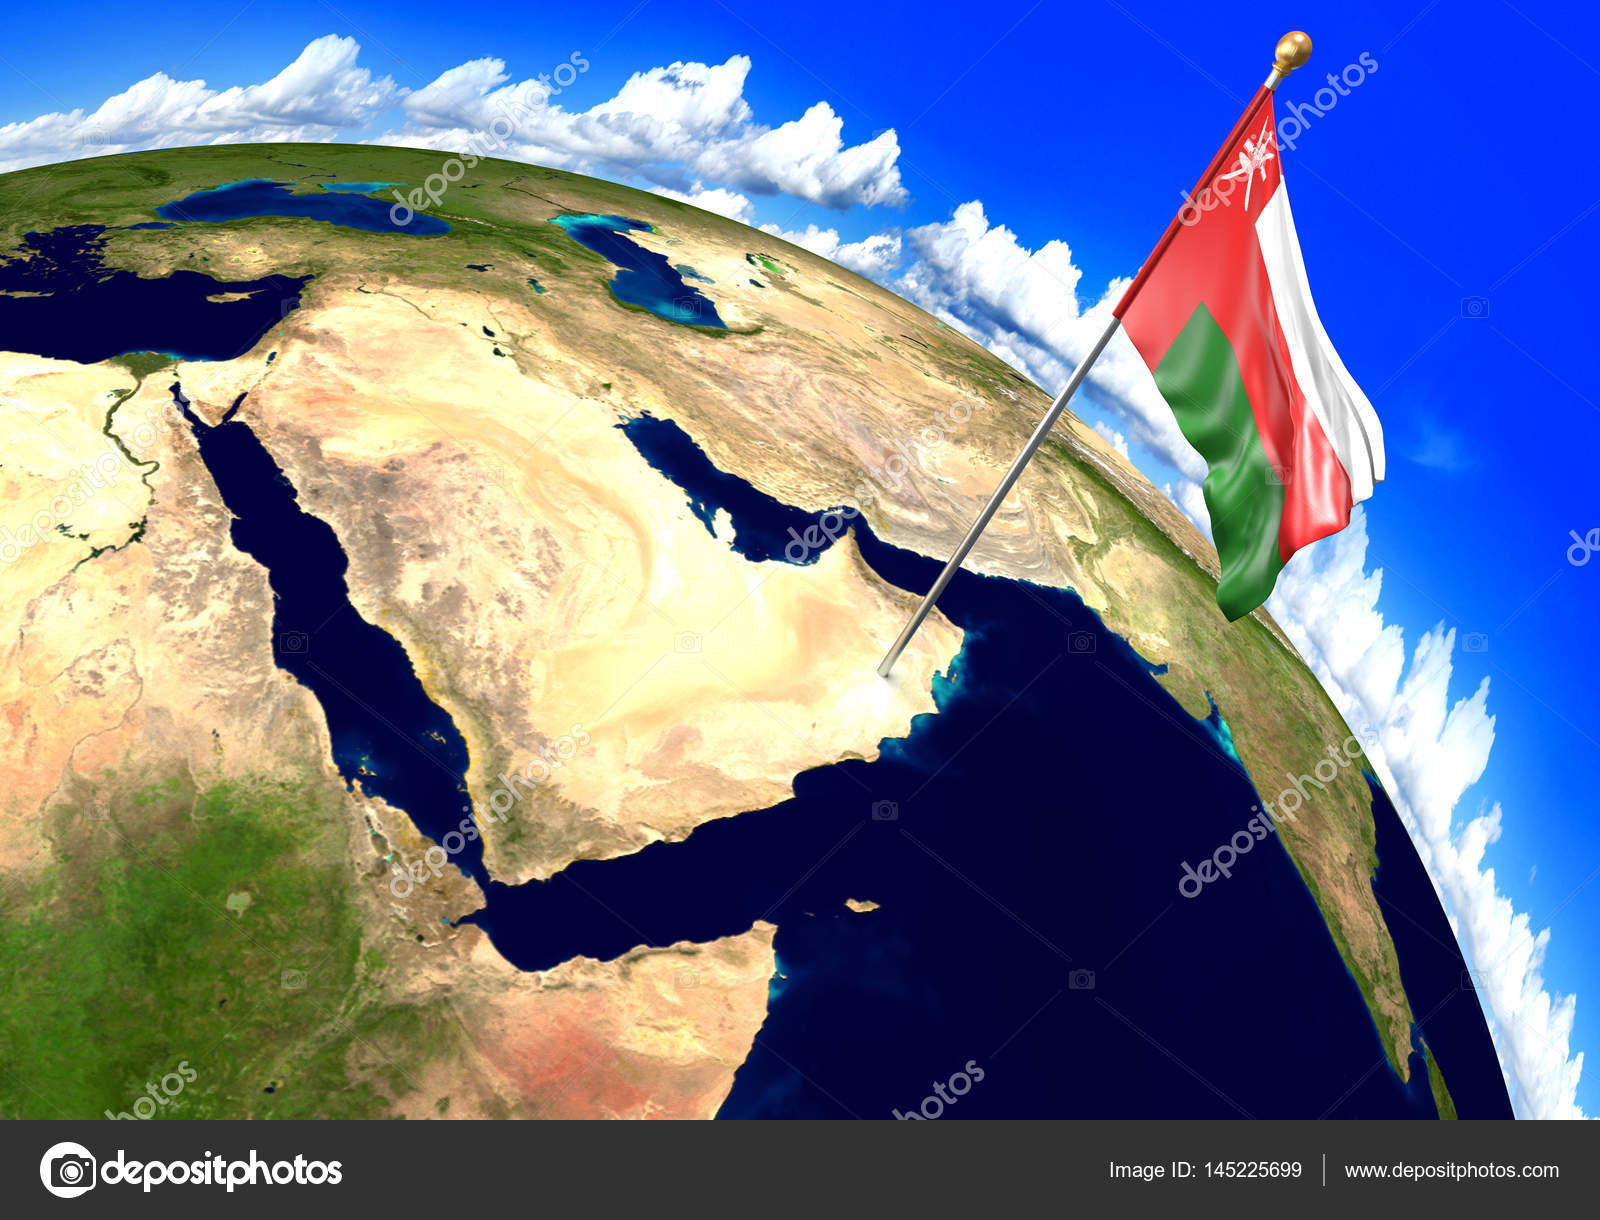 Oman national flag marking the country location on world map 3D